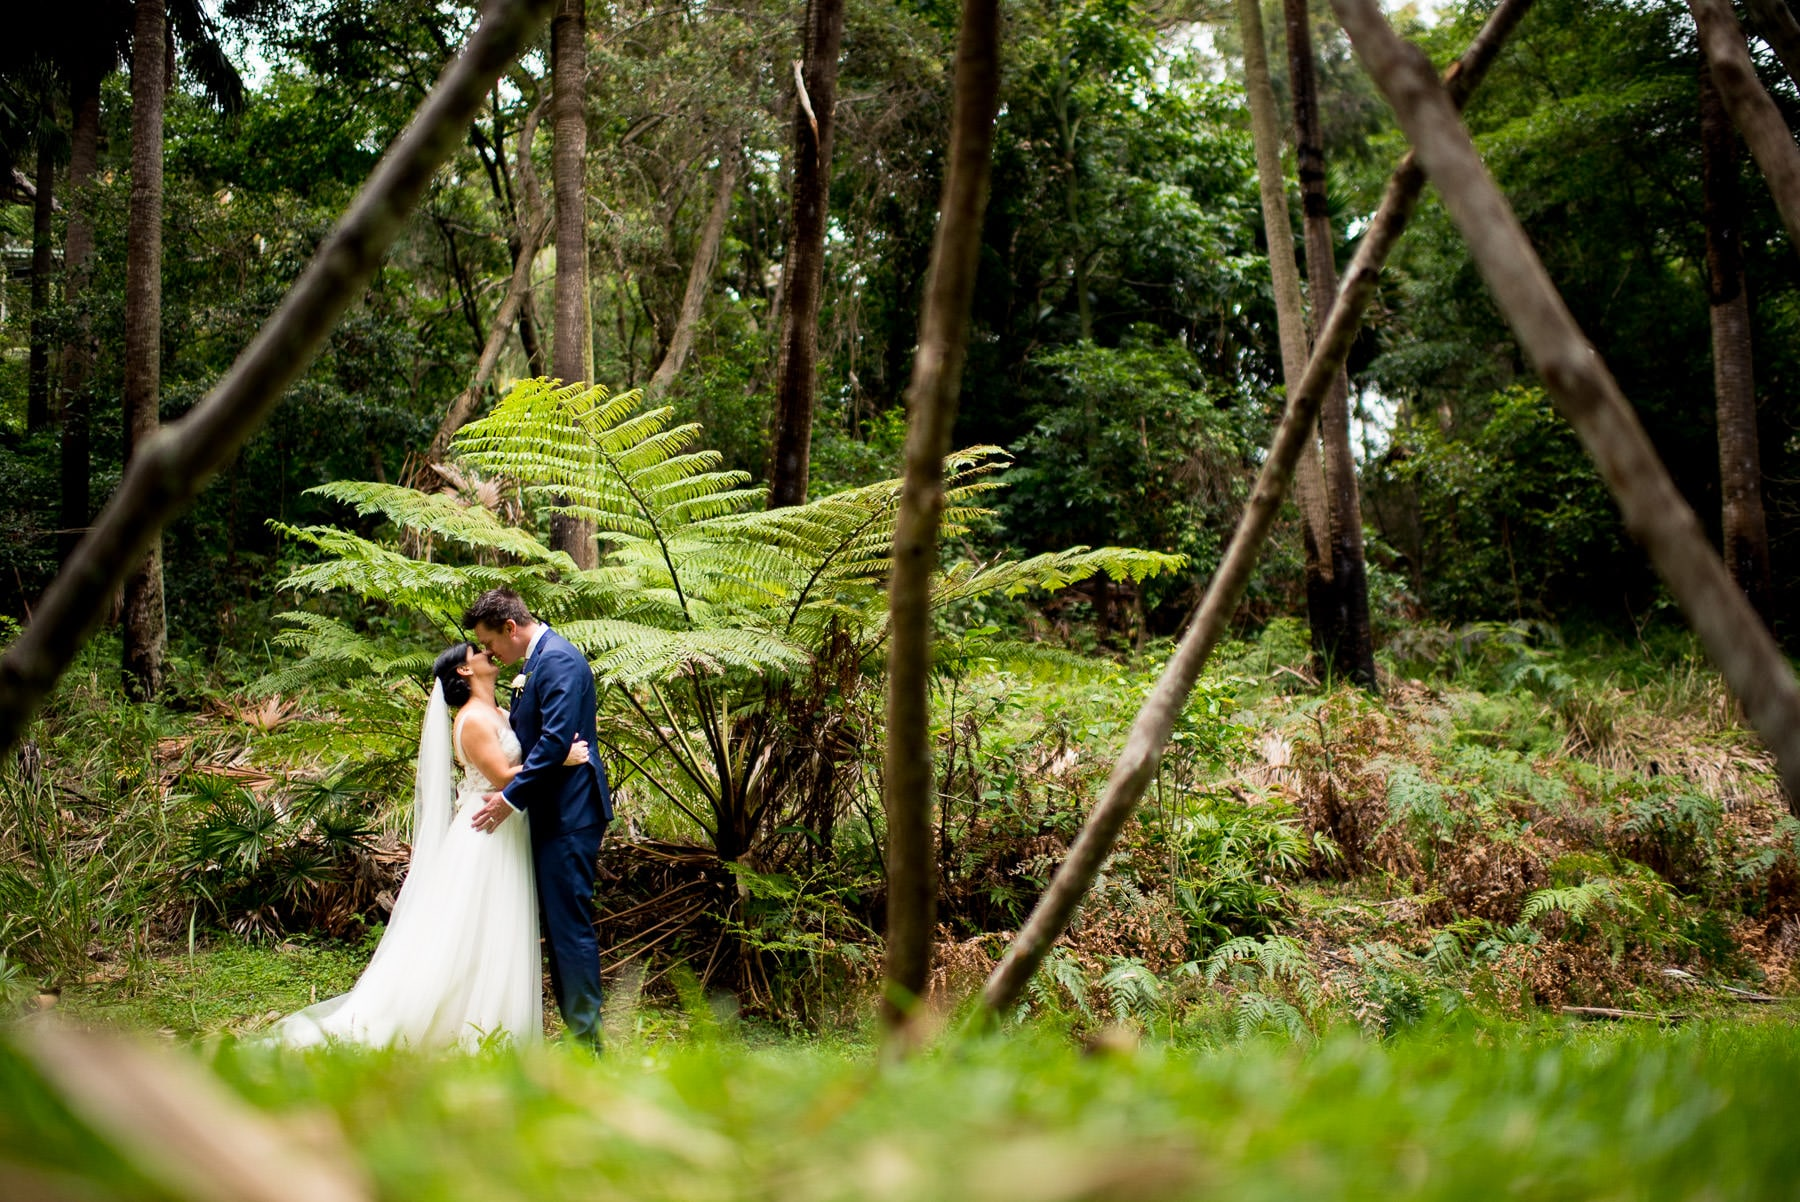 Wedding Photography Locations - Top places to get married